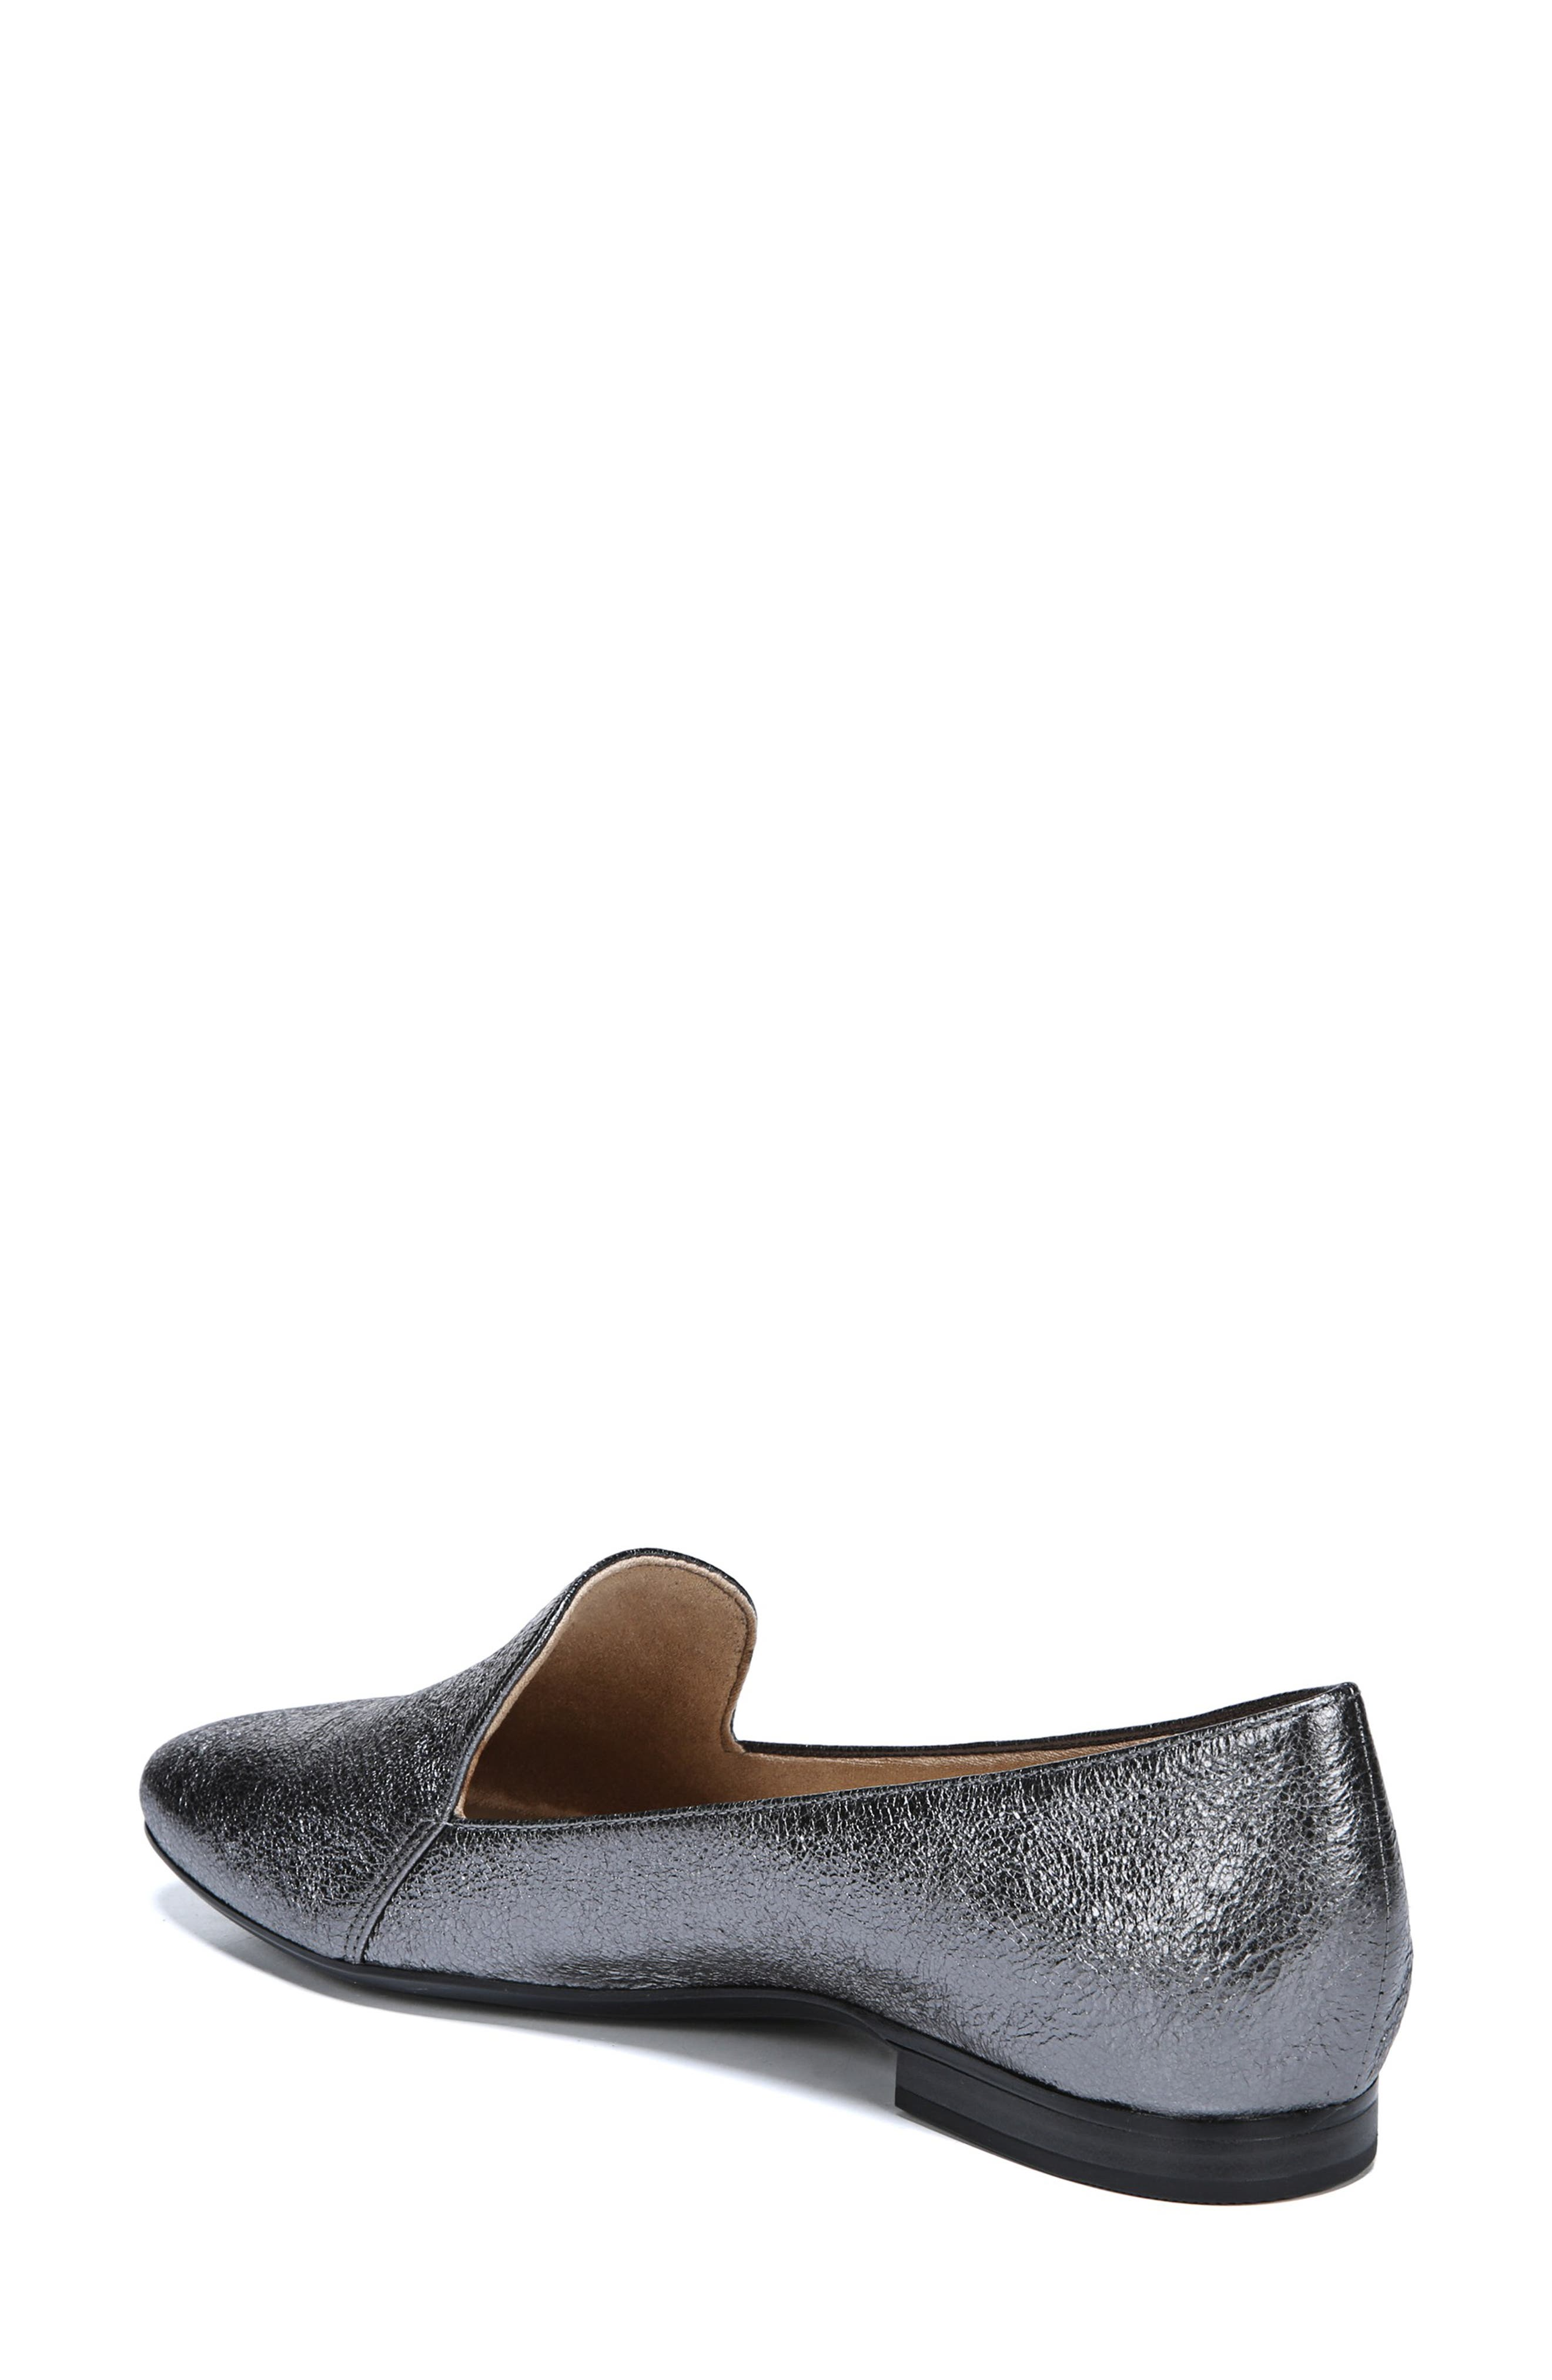 Emiline Flat Loafer,                             Alternate thumbnail 2, color,                             PEWTER LEATHER